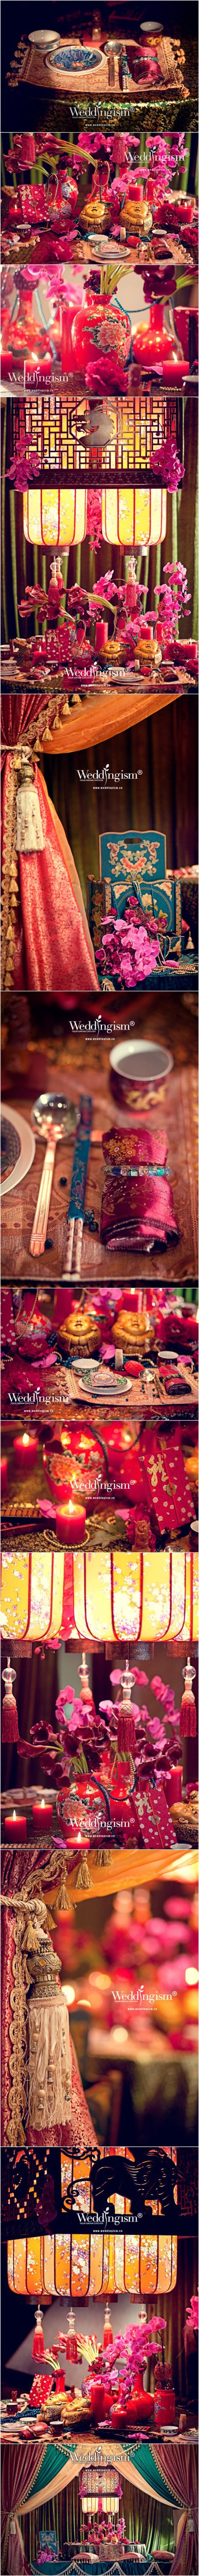 Chinese wedding Keywords: #weddings #jevelweddingplanning Follow Us: www.jevelweddingplanning.com  www.facebook.com/jevelweddingplanning/